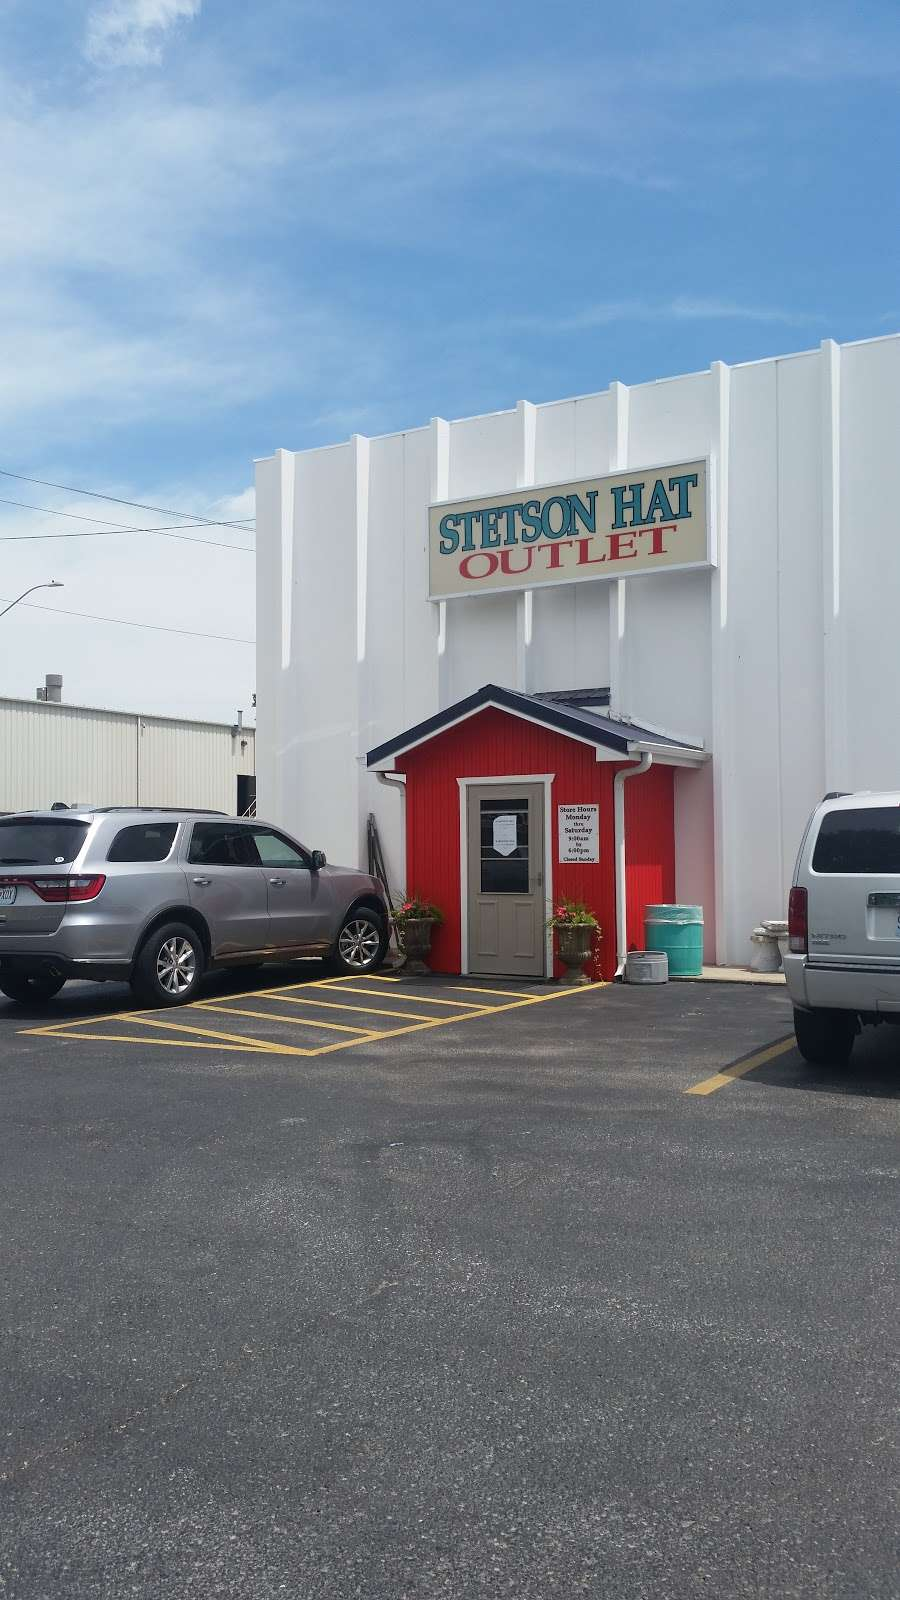 Stetson Hat Co Outlet Store - clothing store    Photo 8 of 10   Address: 3601 S Leonard Rd, St Joseph, MO 64503, USA   Phone: (816) 233-3286